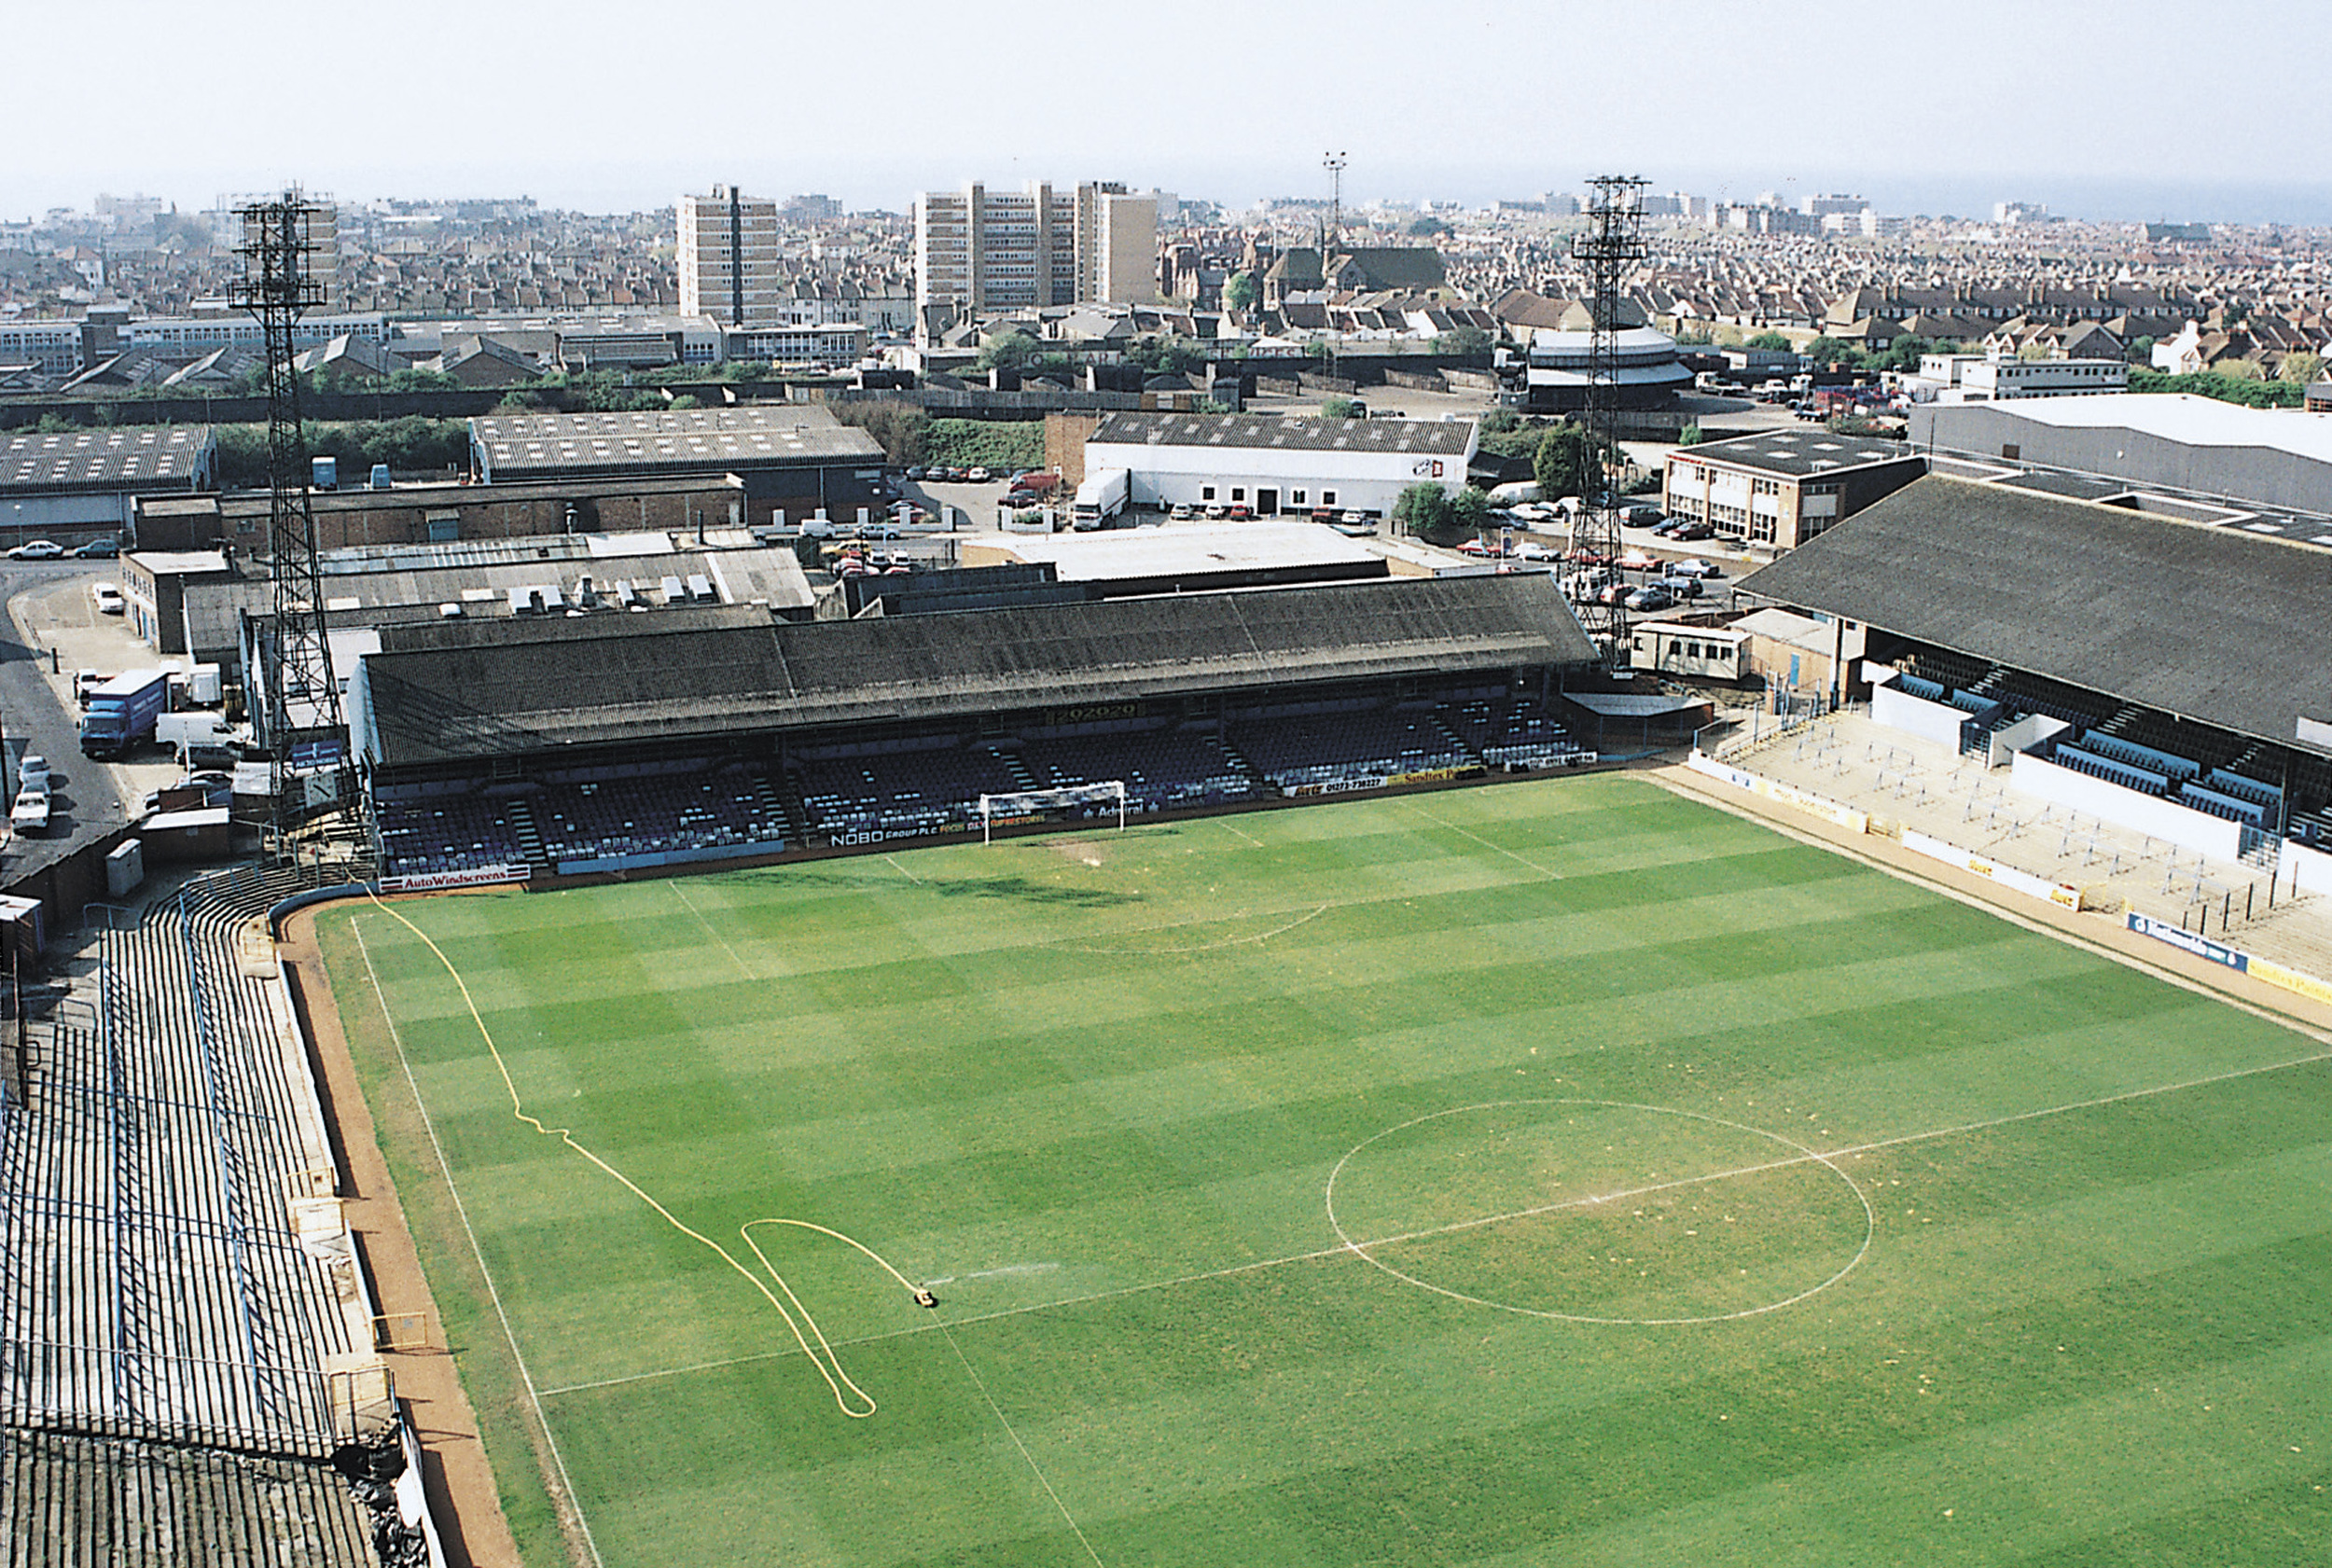 The Goldstone Ground in 1997 - Image courtesy of BHAFC